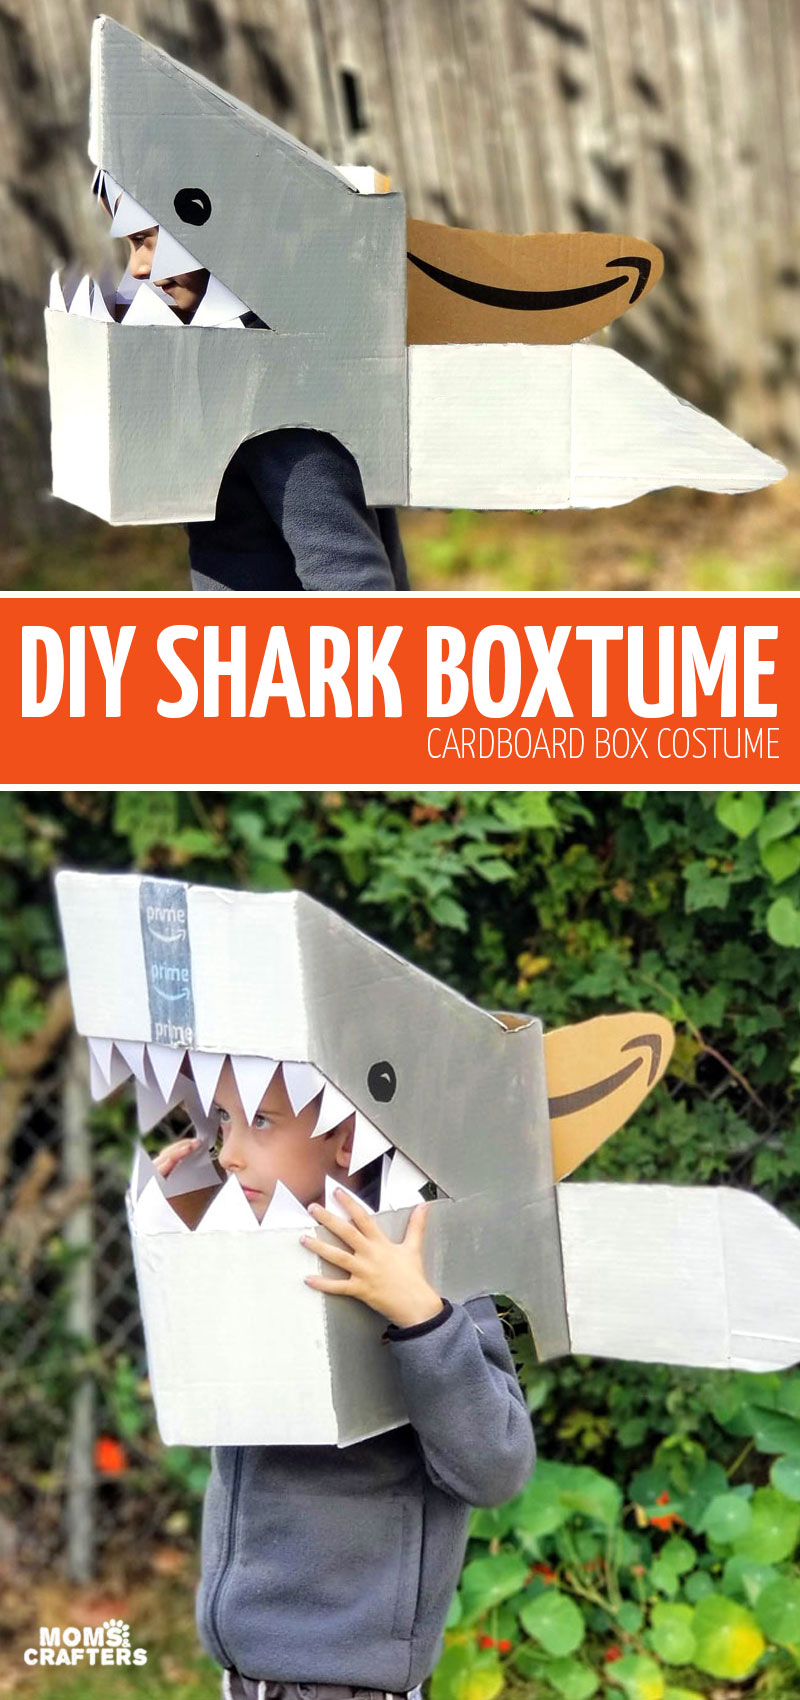 Craft an easy DIY Shark Costume - a great last minute Halloween costume idea using a cardboard box. Call it a Boxtume! This upcycled inexpensive costume is so easy to make.